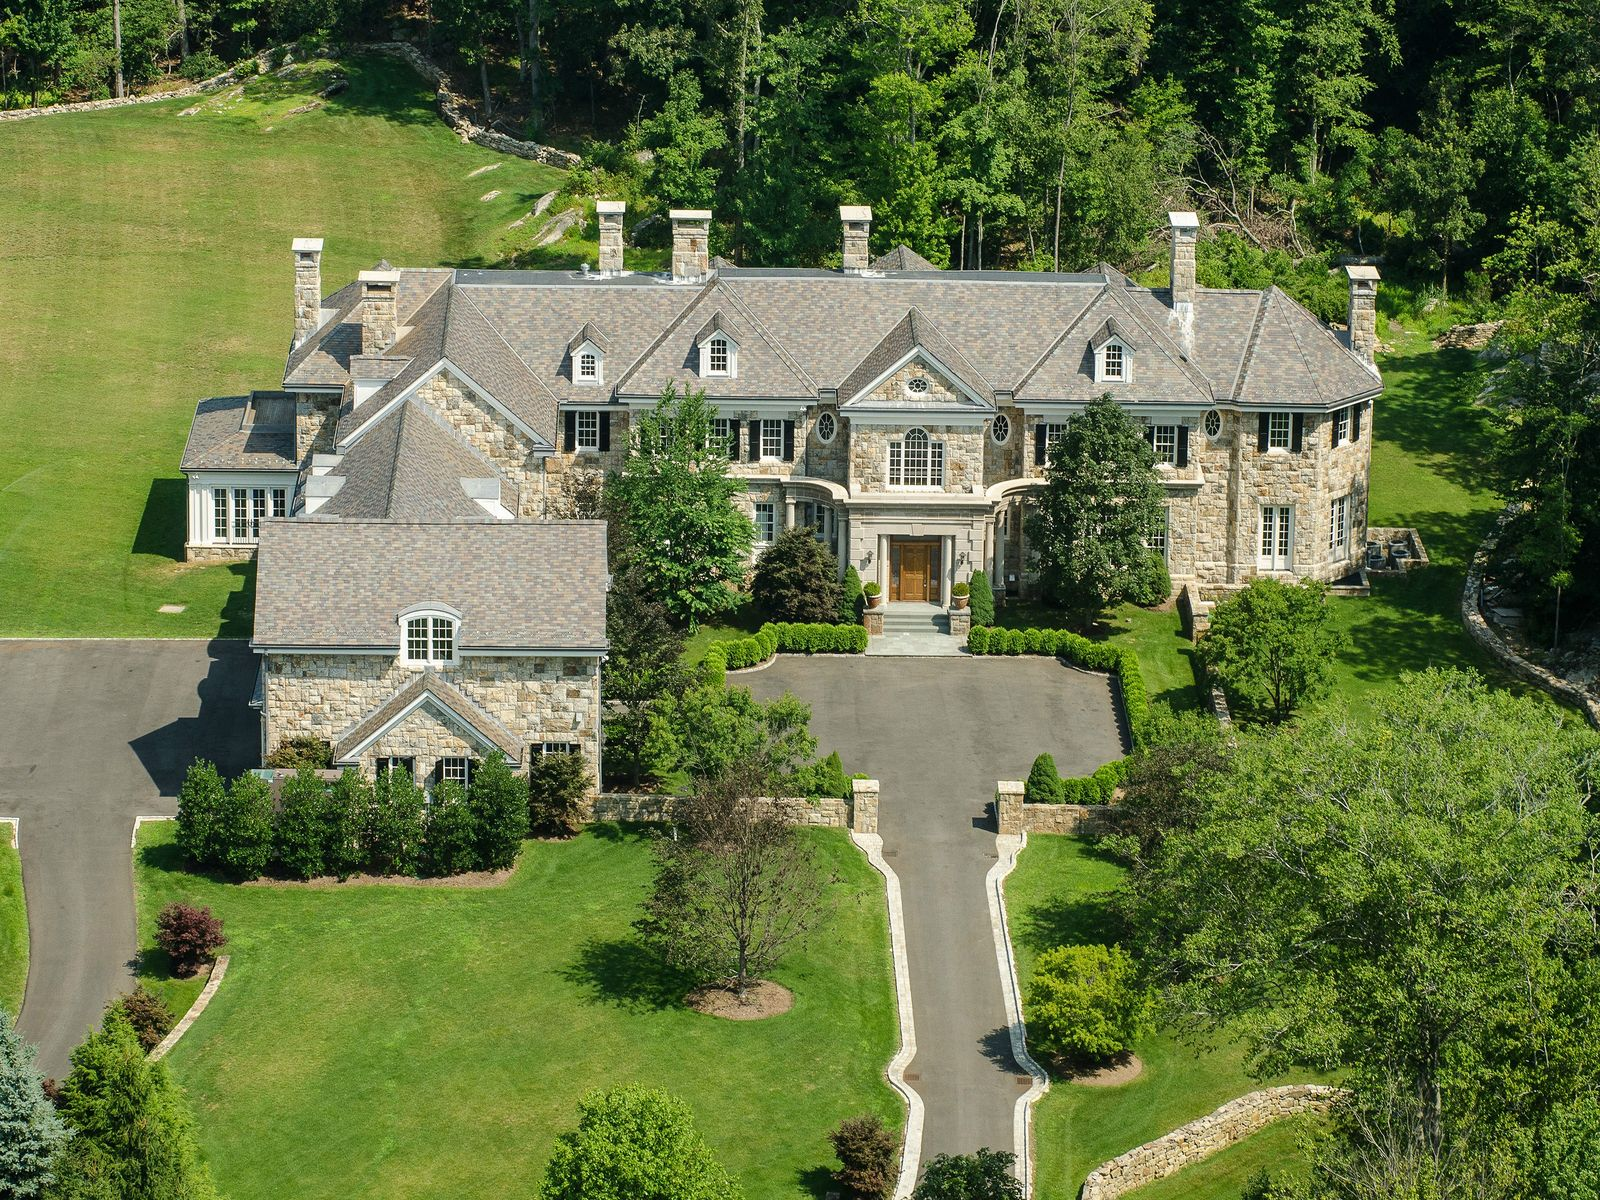 Magnificent Backcountry Estate, Greenwich CT Single Family Home - Greenwich Real Estate